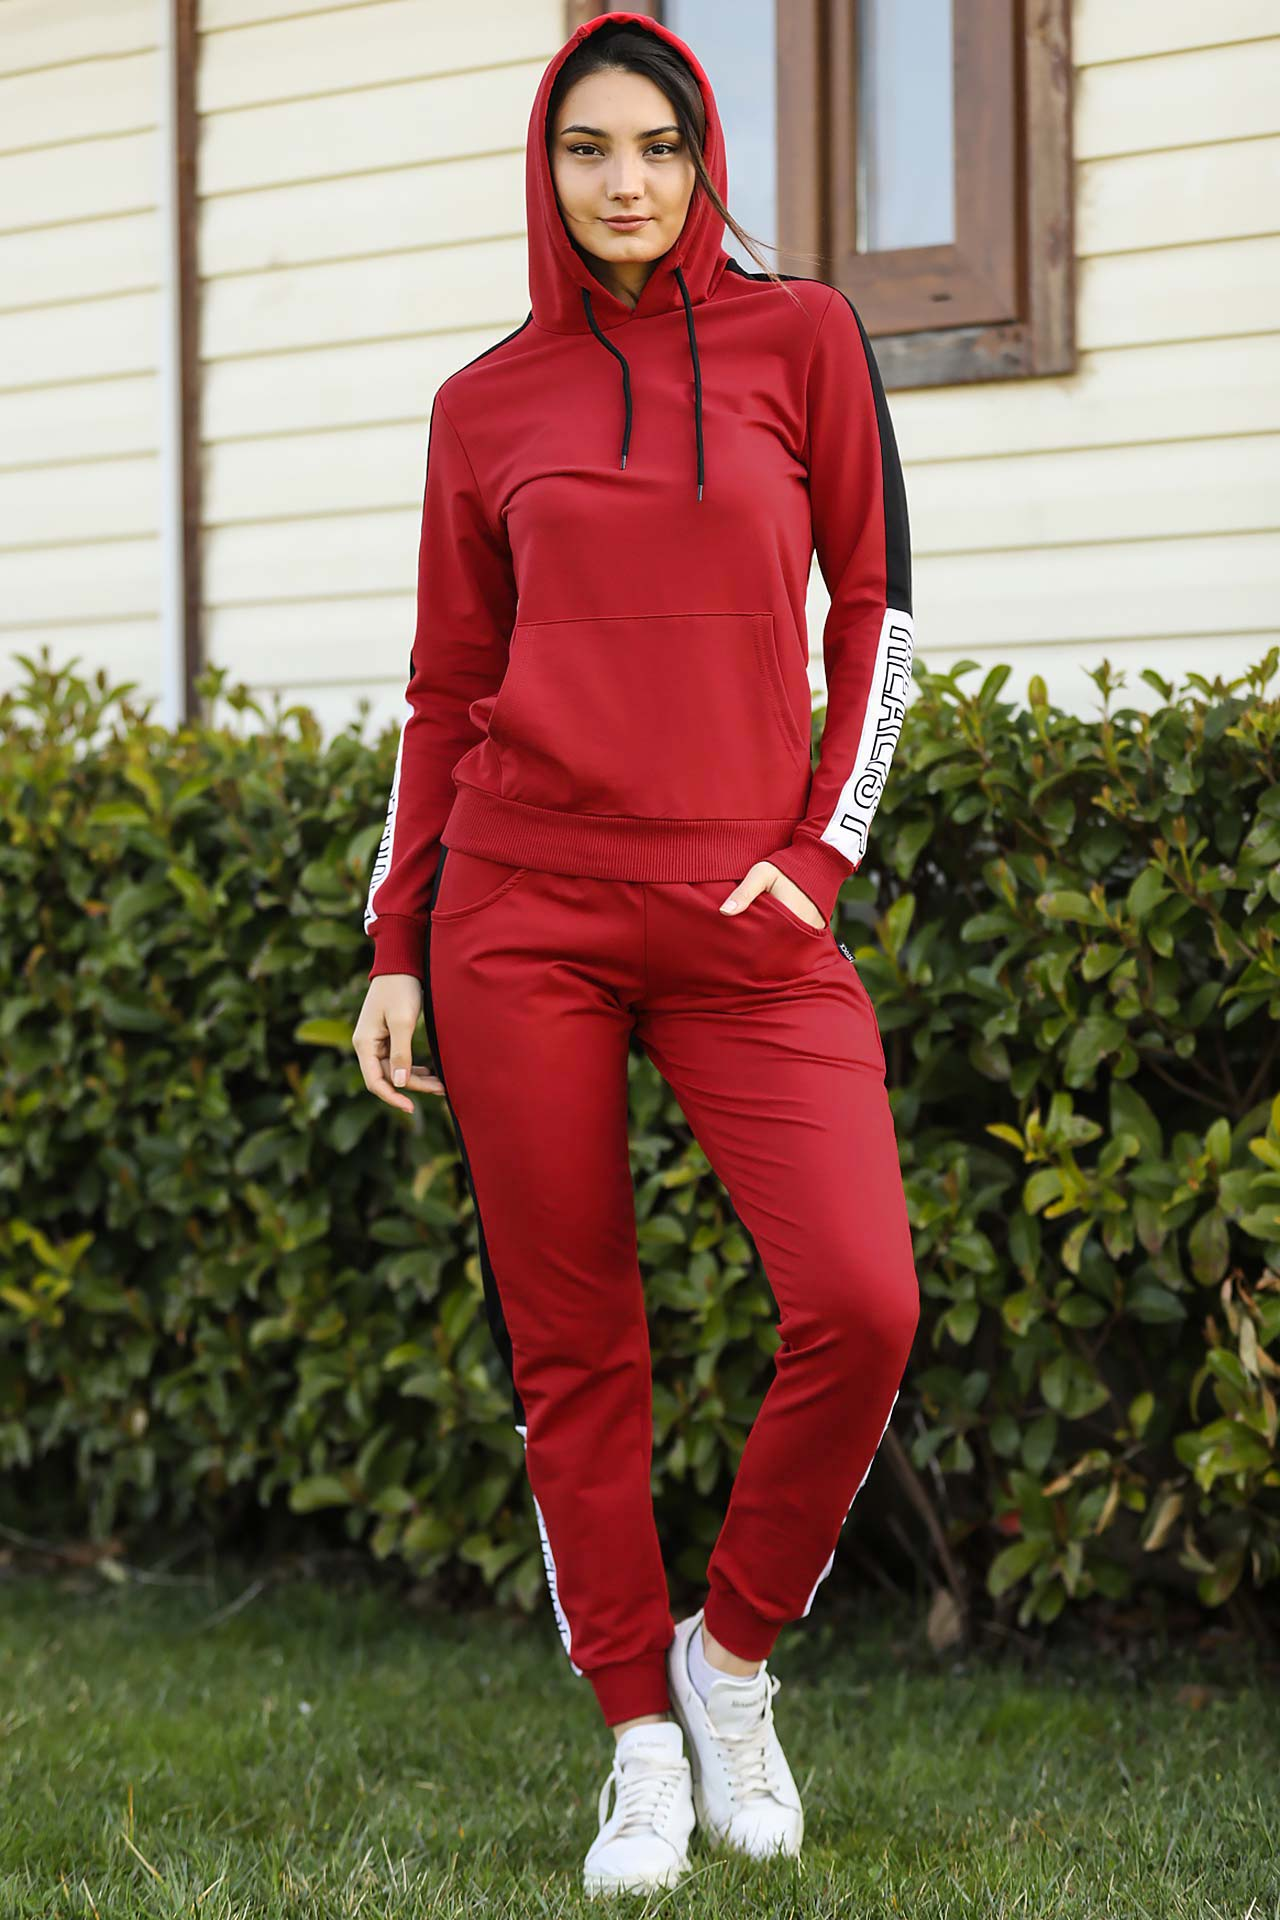 Women's Hooded Red Sweat Suit